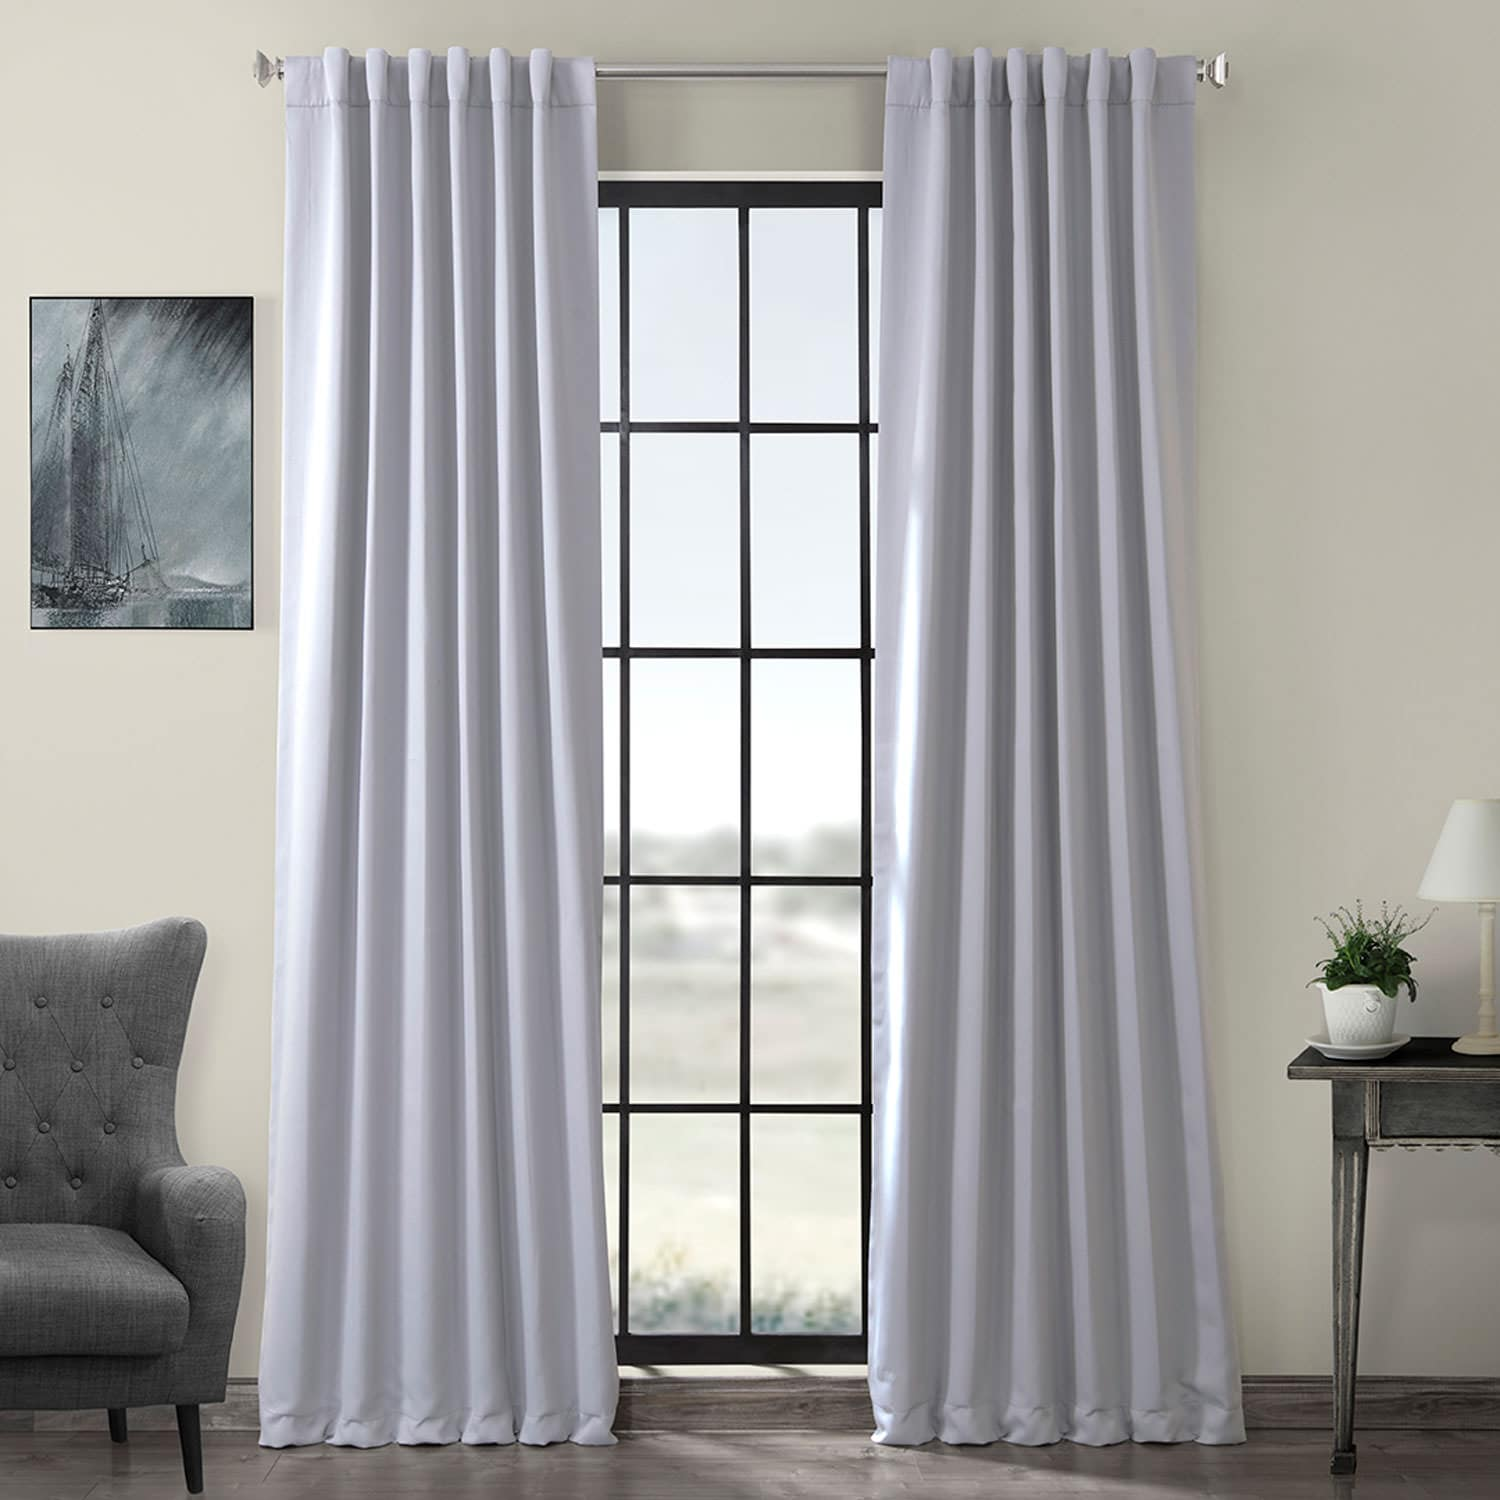 get fog grey blackout curtain and drapes 11743 | boch 144105 35643